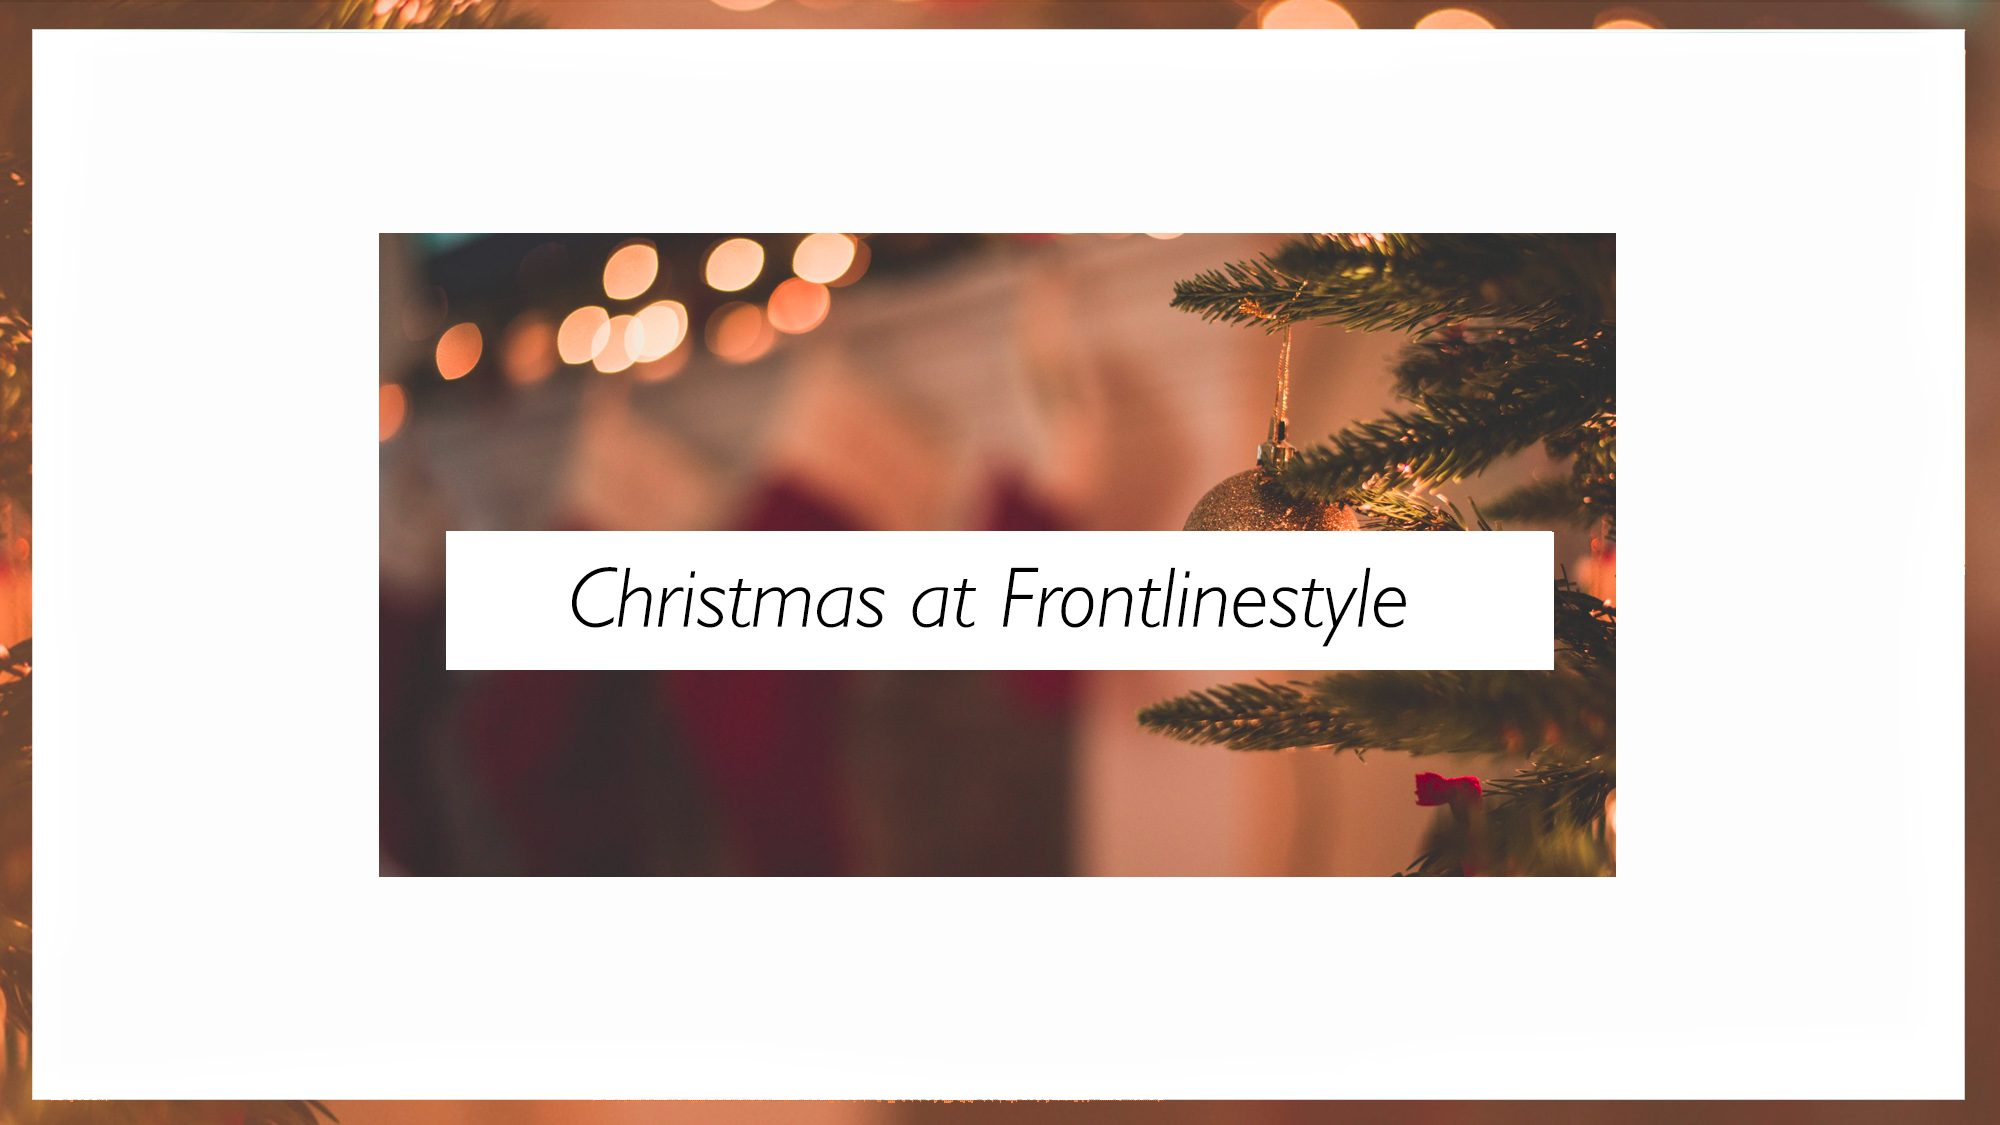 Christmas at Frontlinestyle